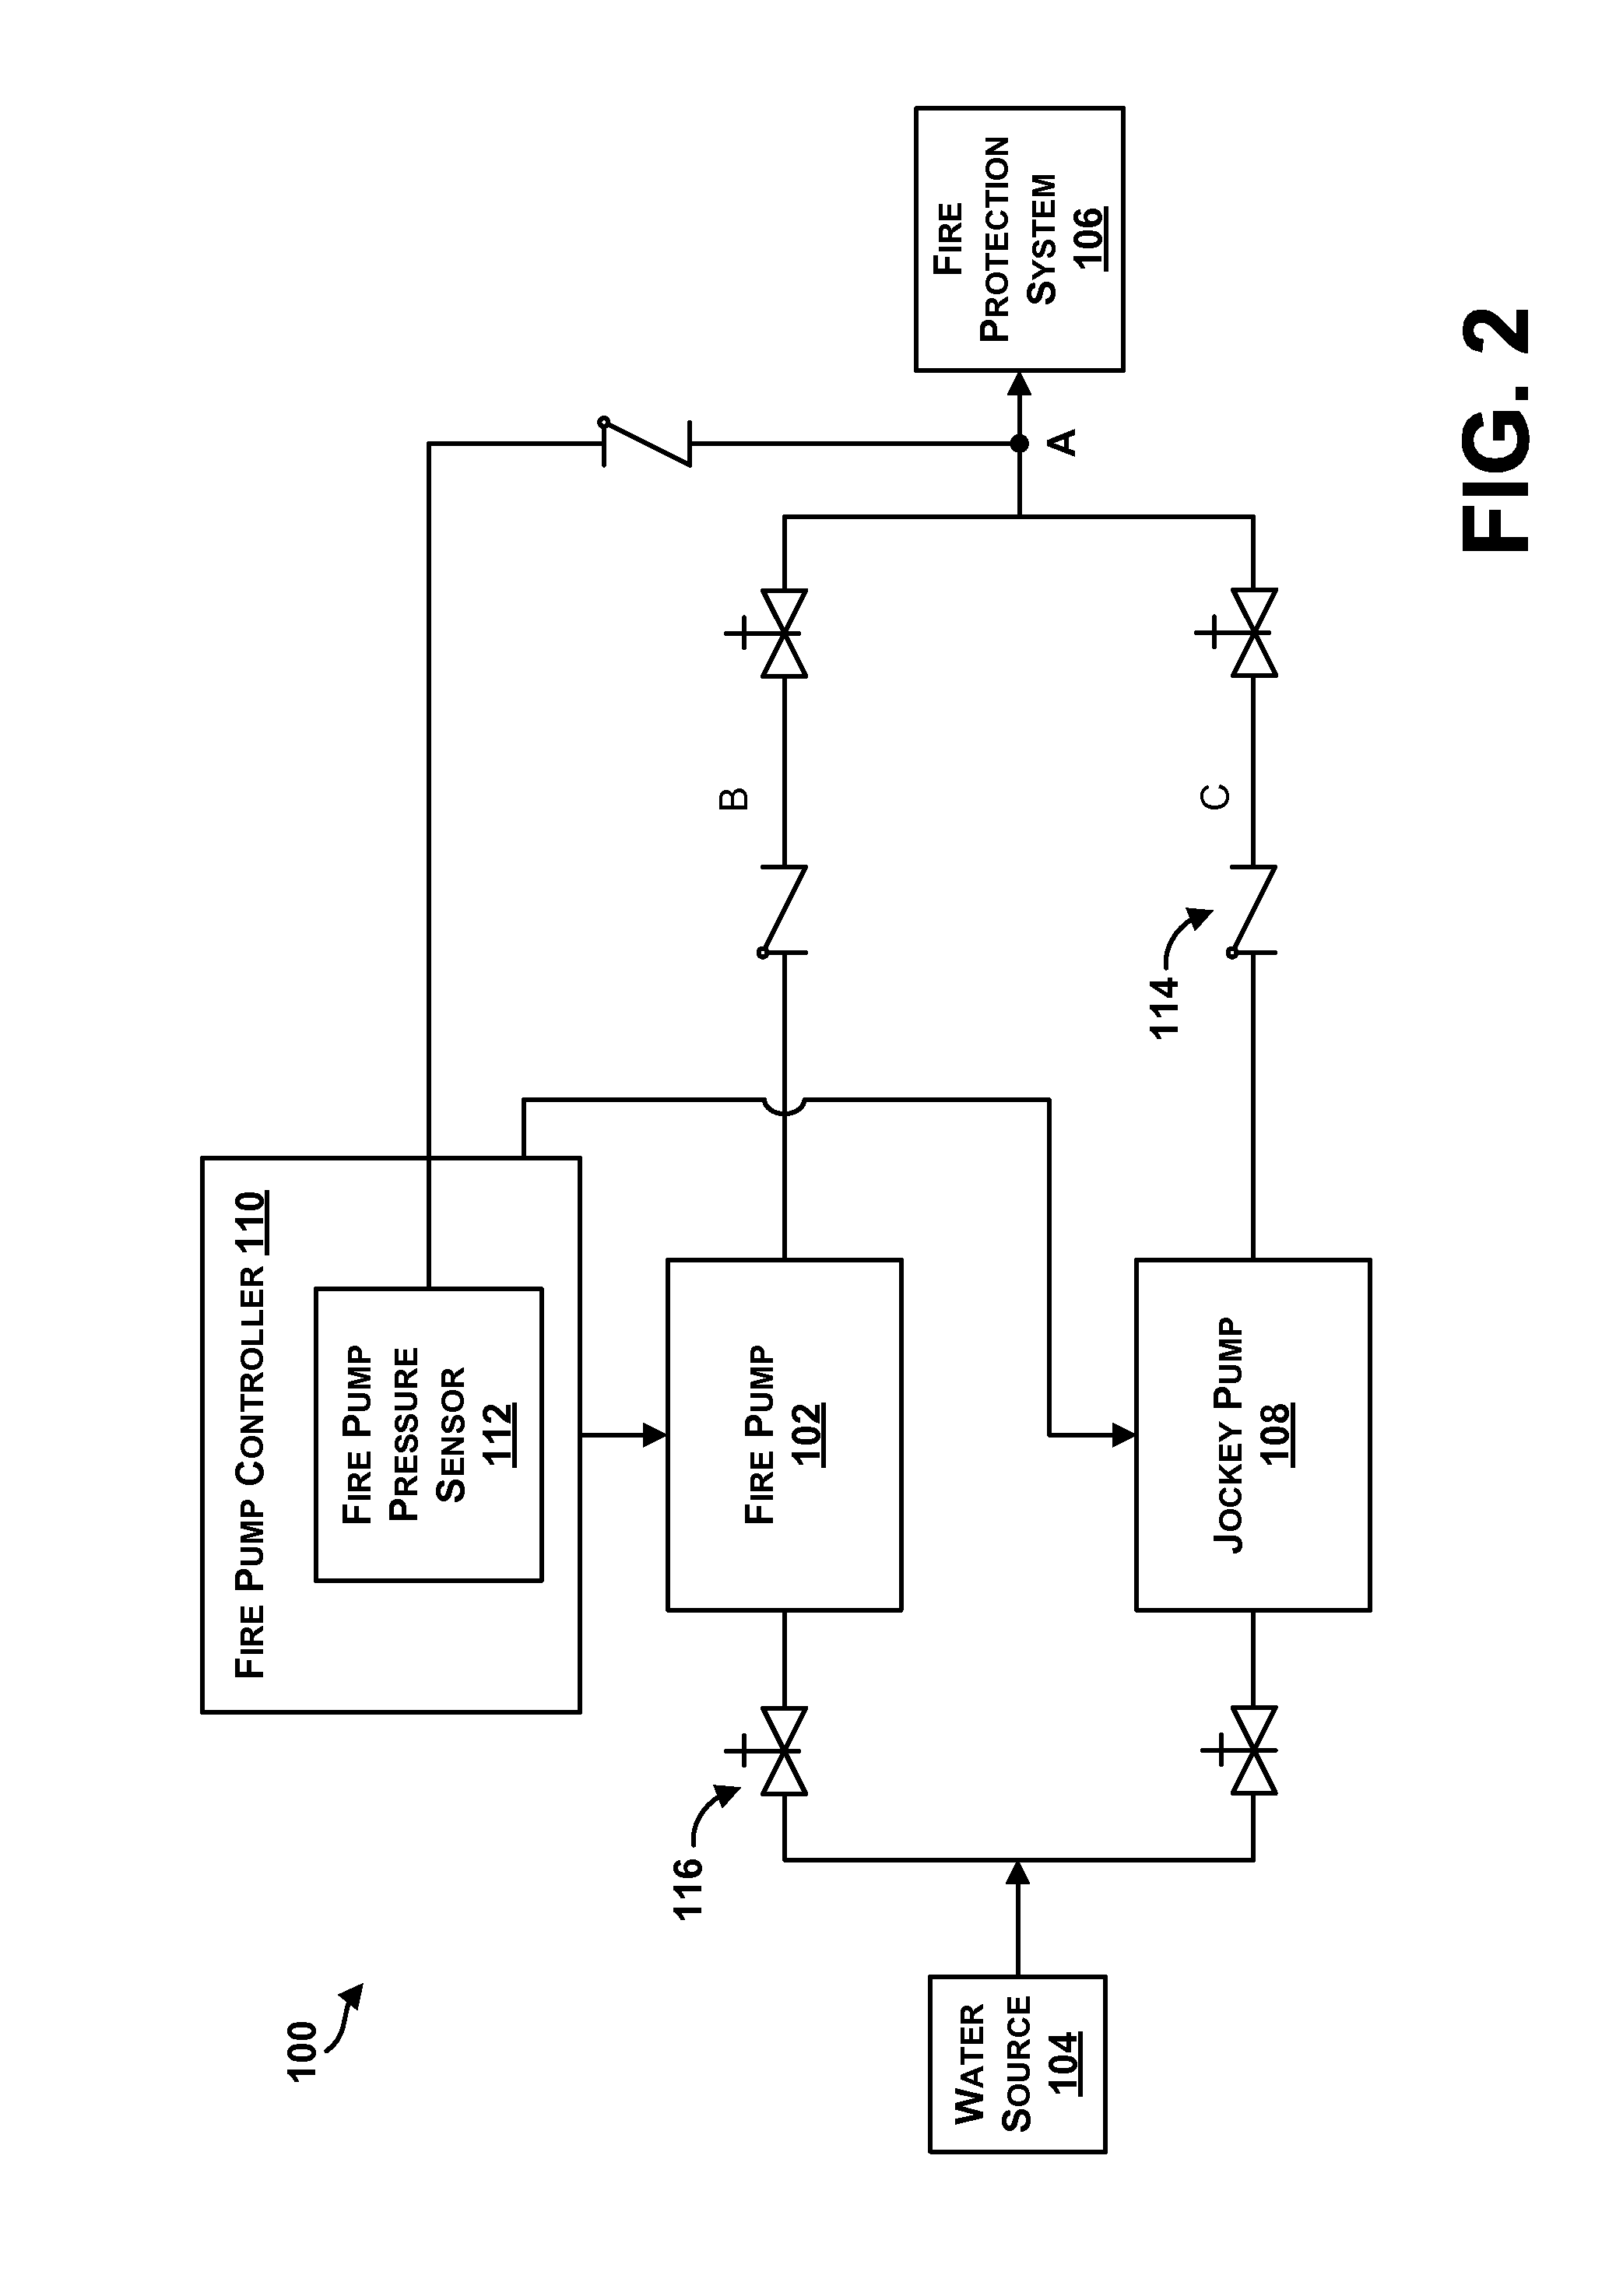 nfpa fire pump installation diagram nfpa image patent us20140271253 fire pump controller configured to control on nfpa fire pump installation diagram